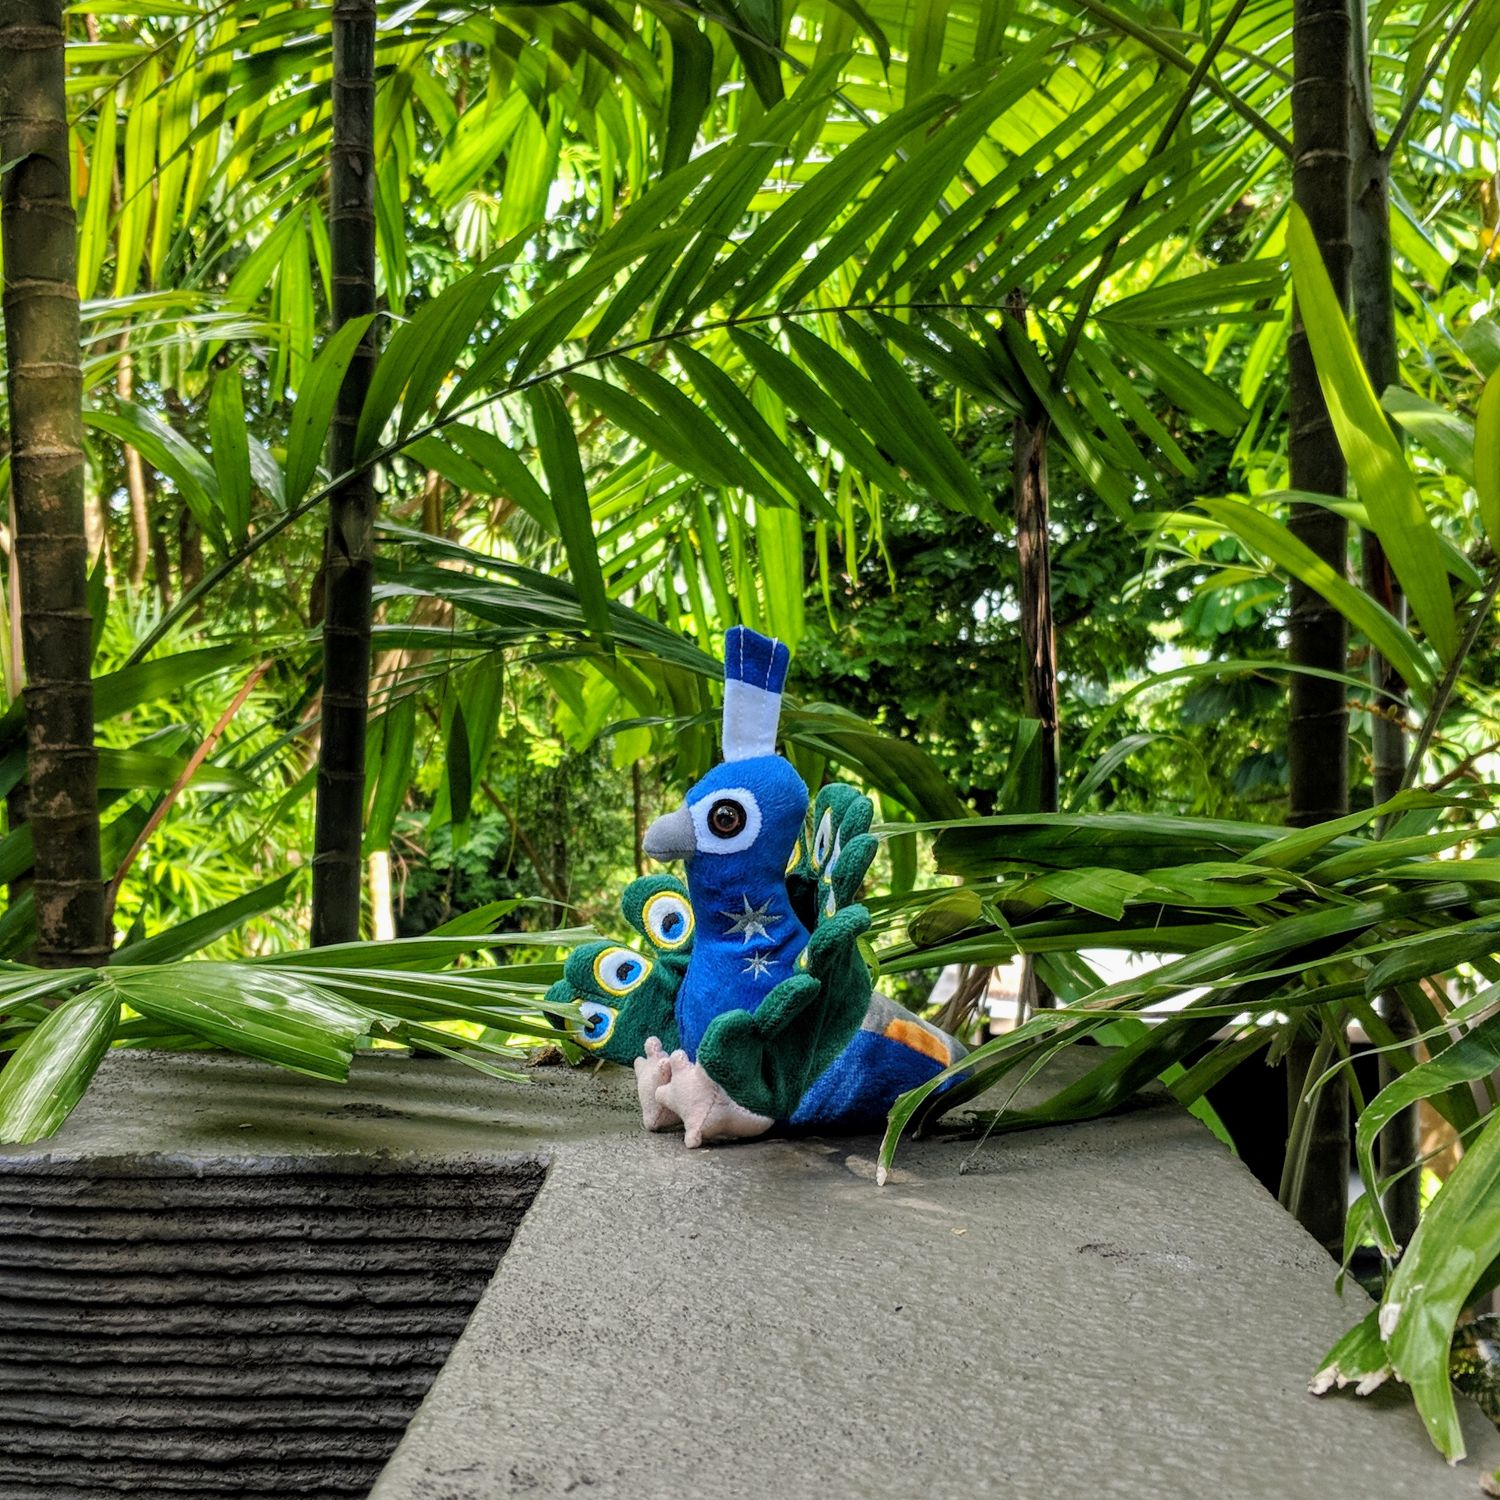 capella singapore peacock mascot plush